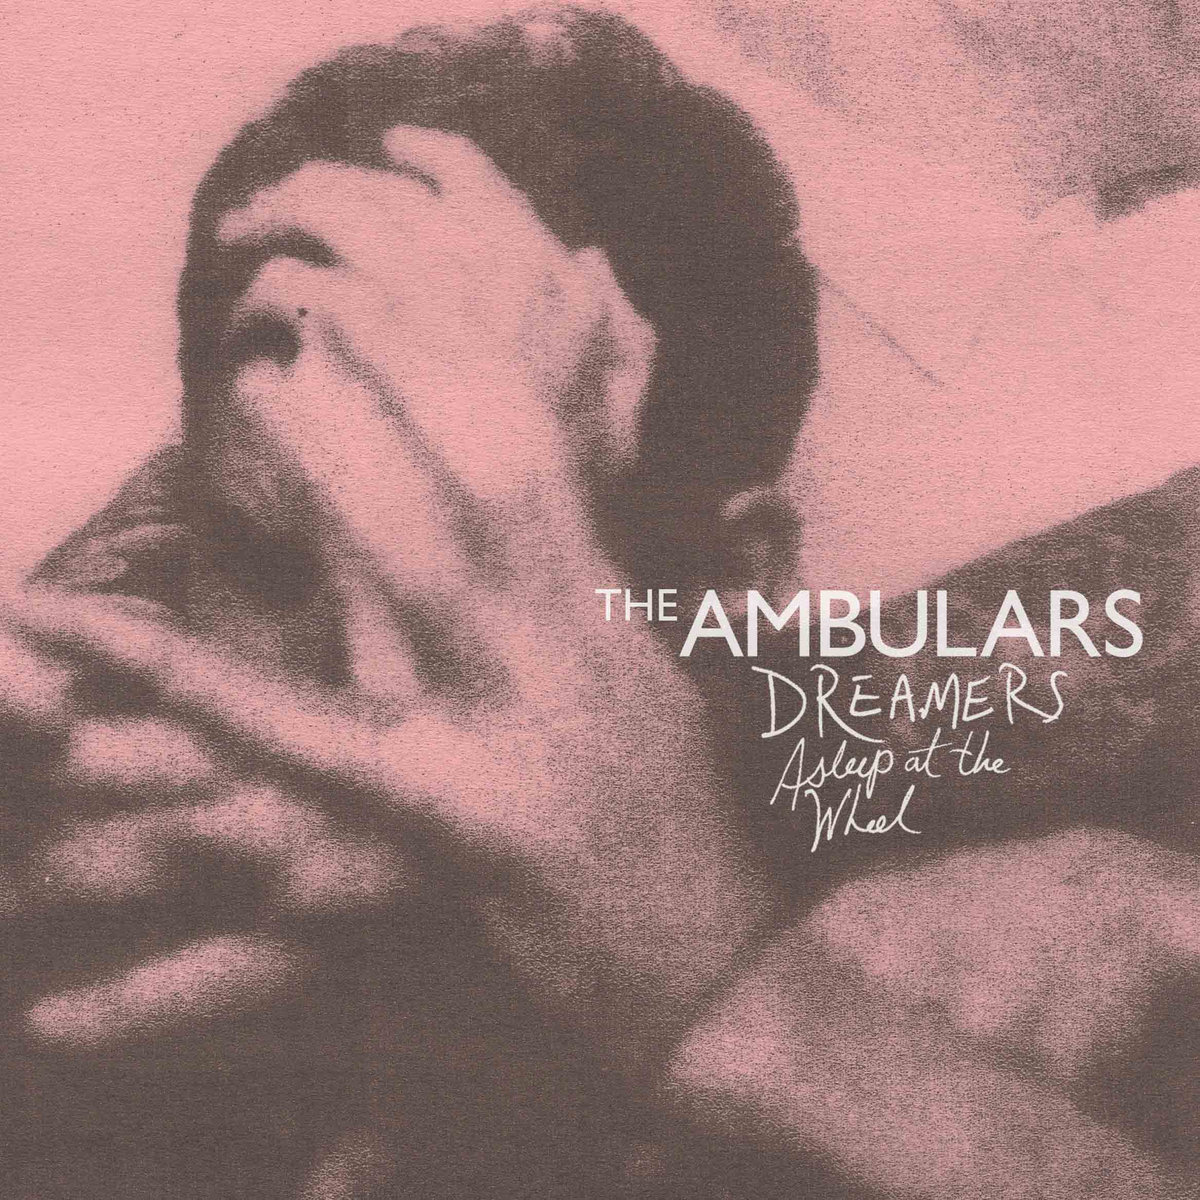 The Ambulars